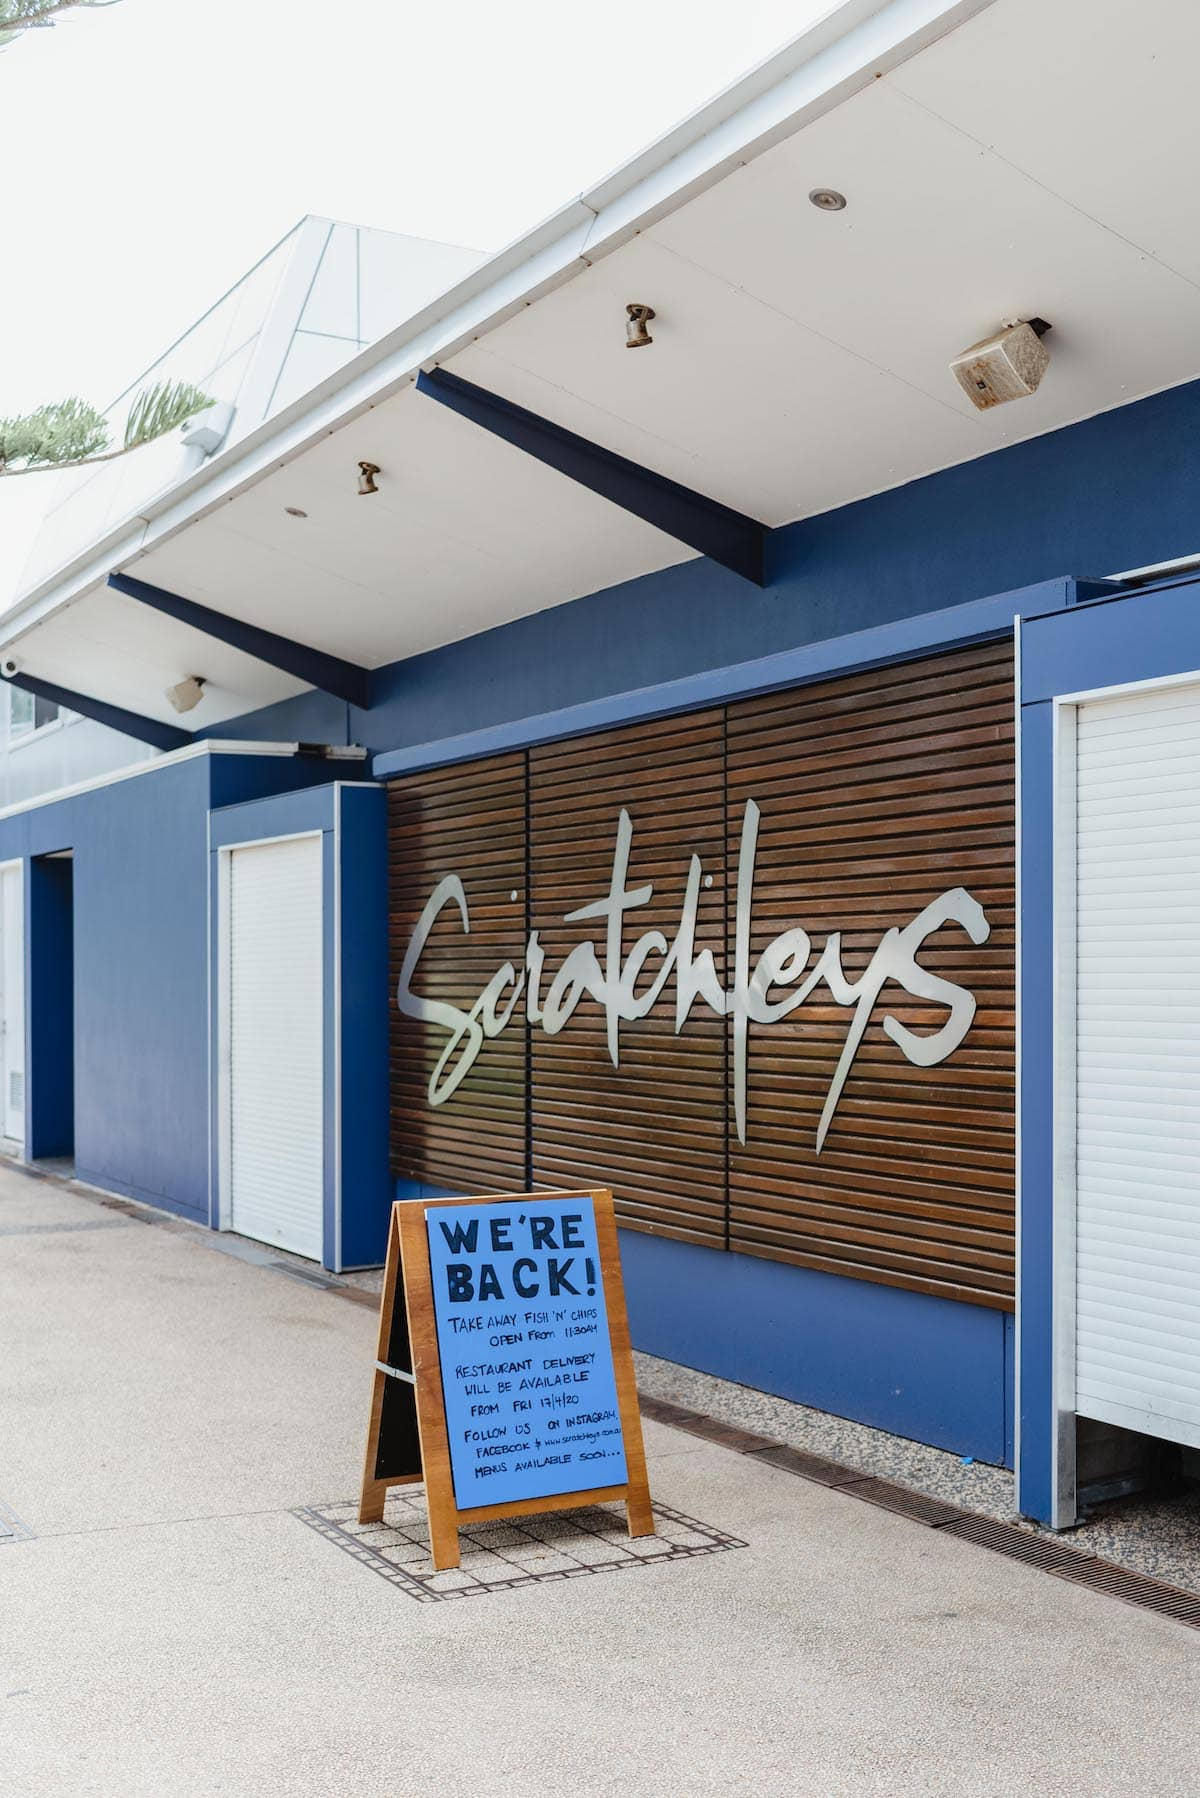 scratchleys on the wharf seafood restaurant newcastle